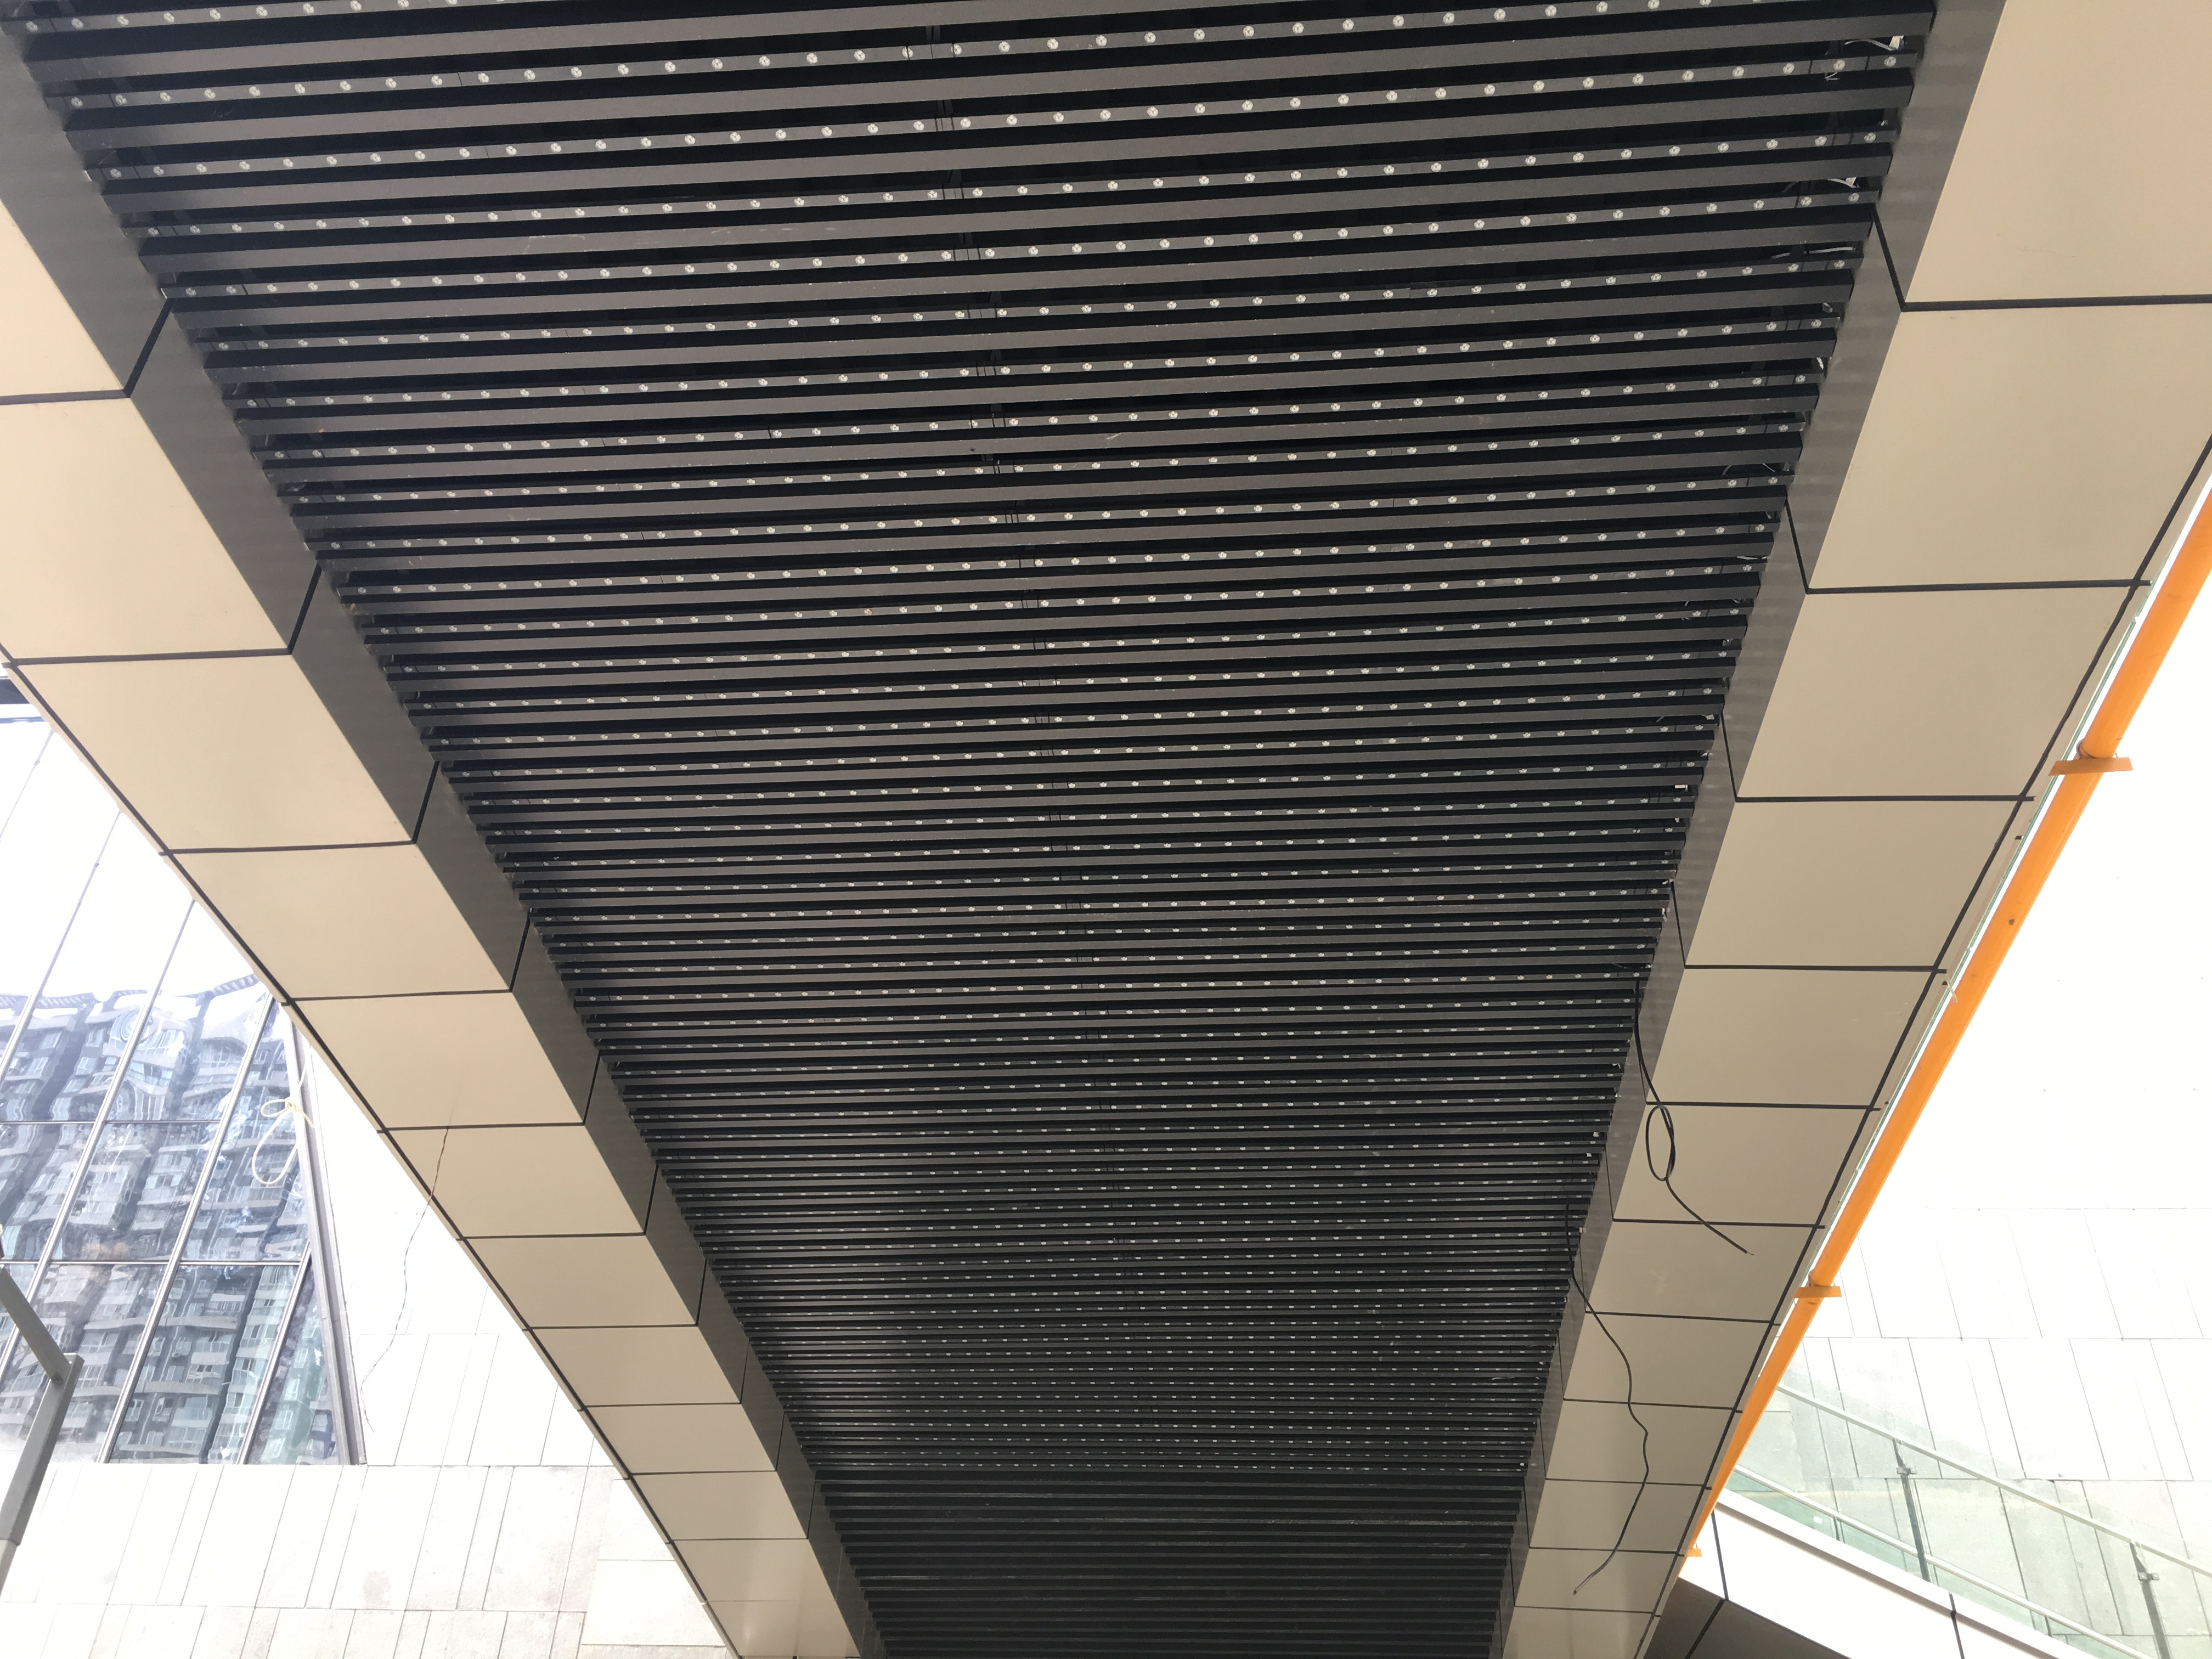 Mesh LED ceiling product